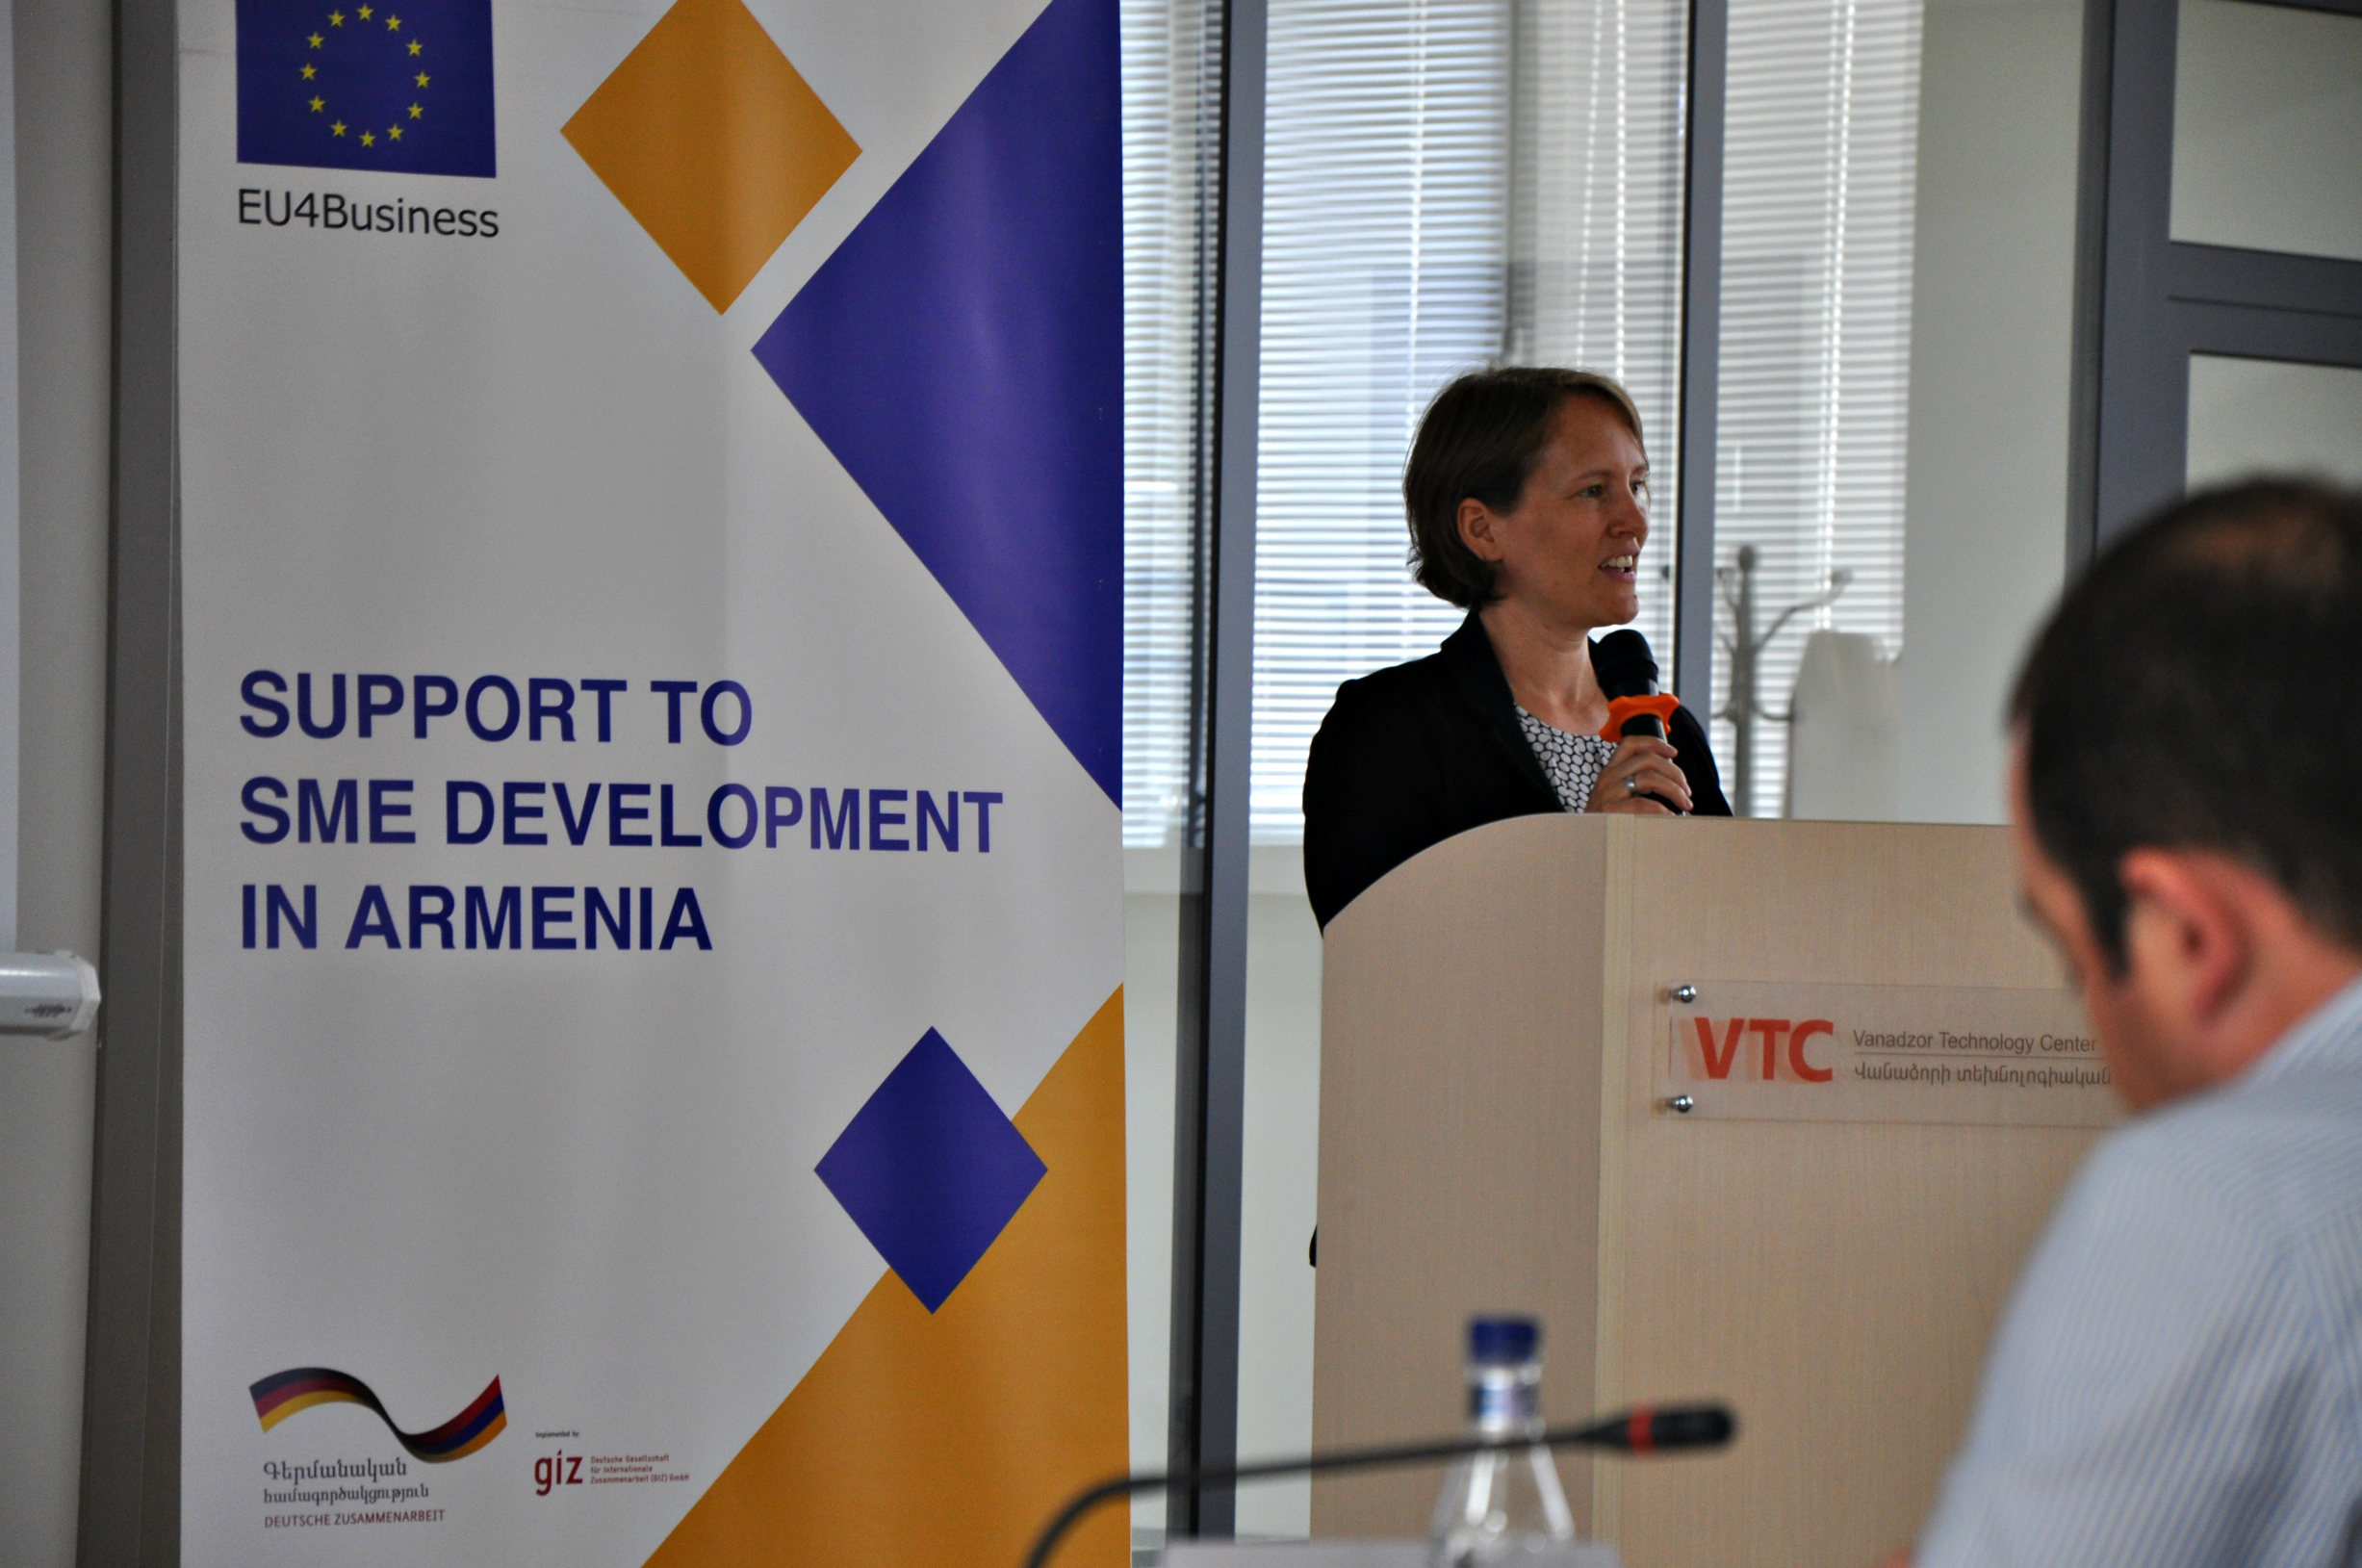 IT is promising in Armenia, the entrepreneurial culture needs a boost. Eva Maria Näher